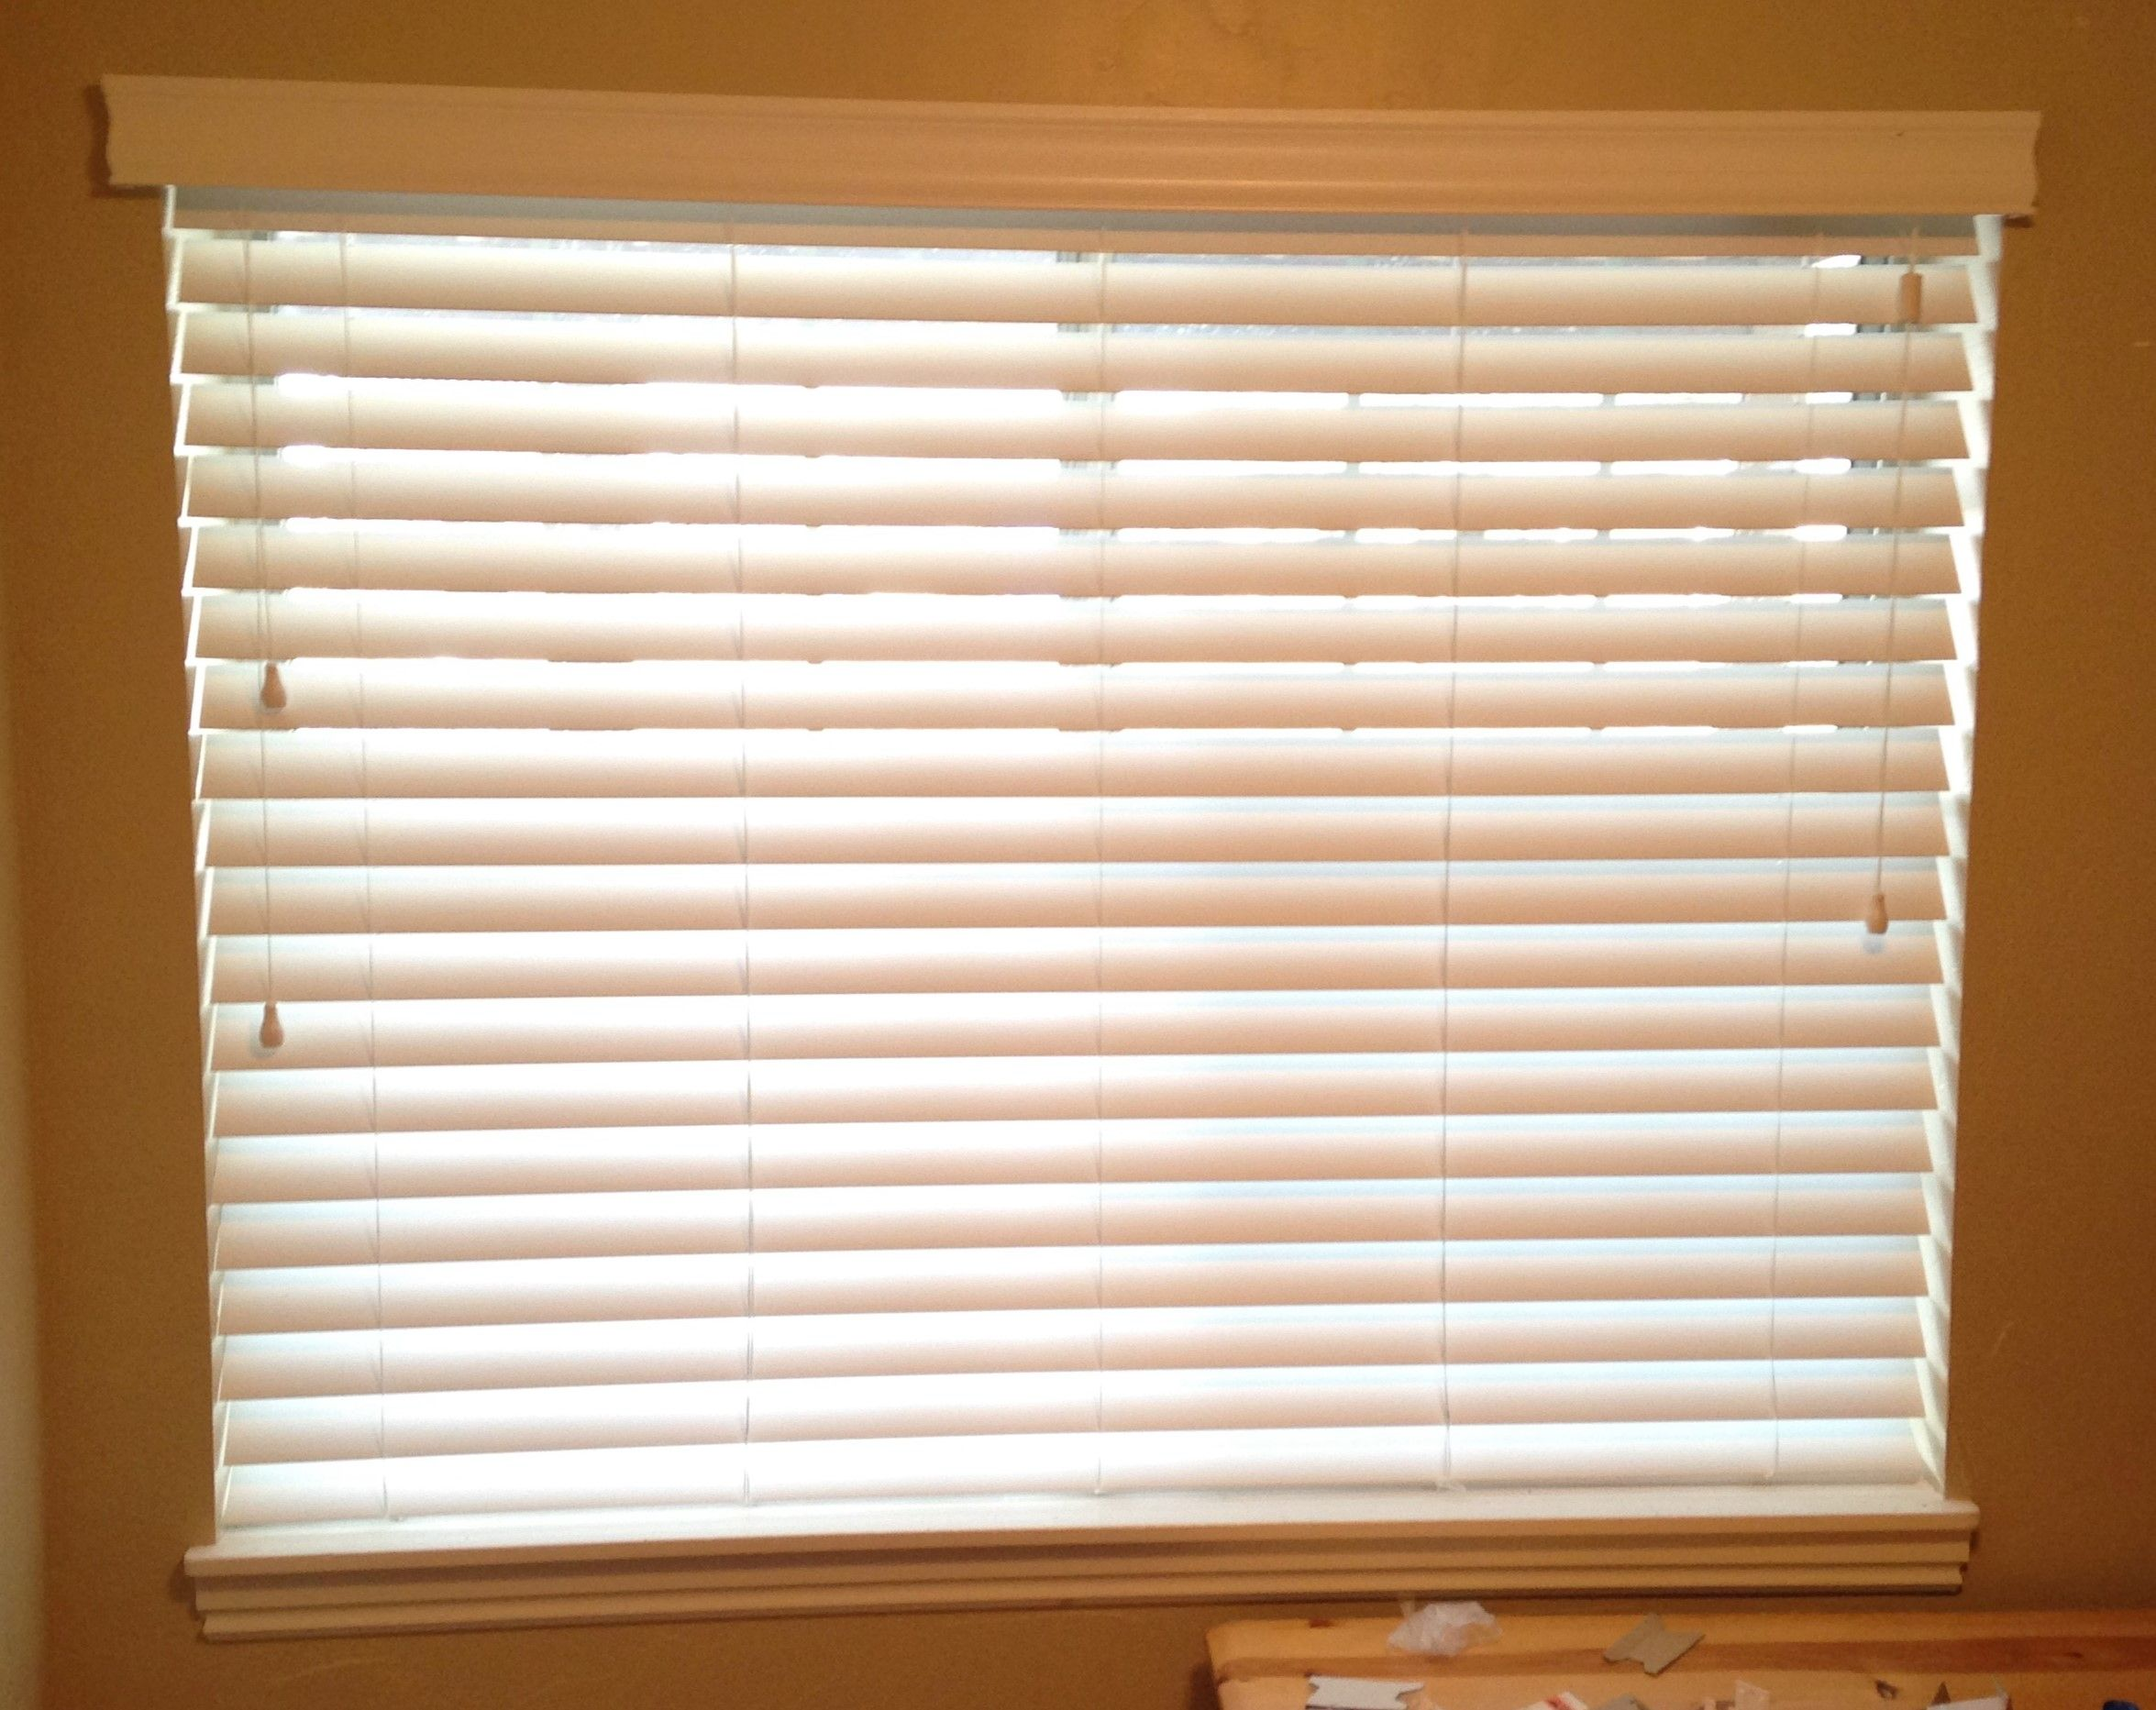 night roller pin blind more cm colours day white blinds and corded w l